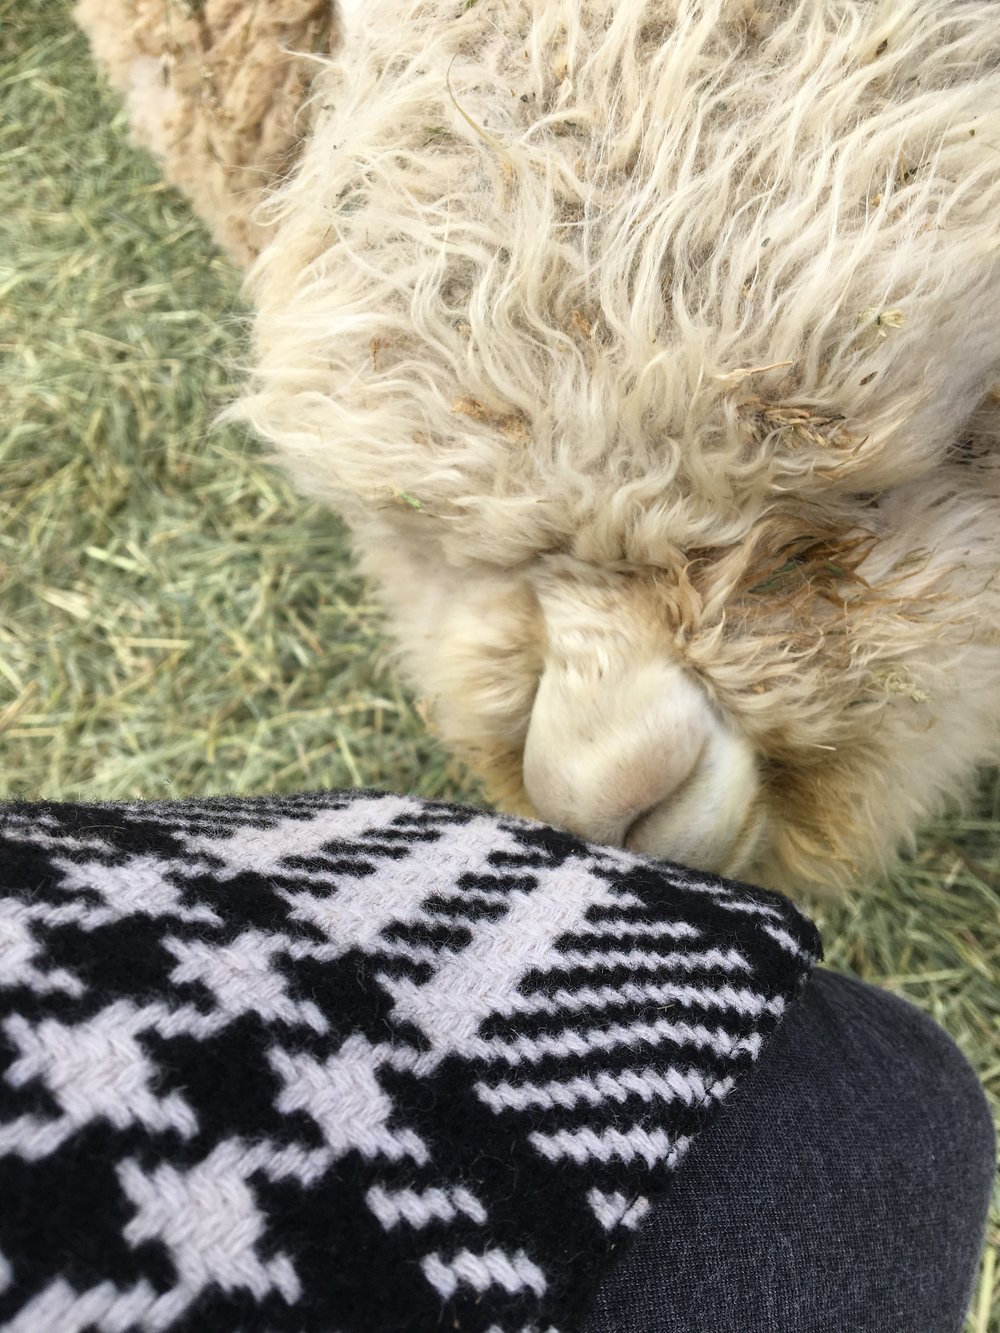 Sprinkles, the baby, kept nuzzling my leg. Unfortunately for him, I had no milk to share!